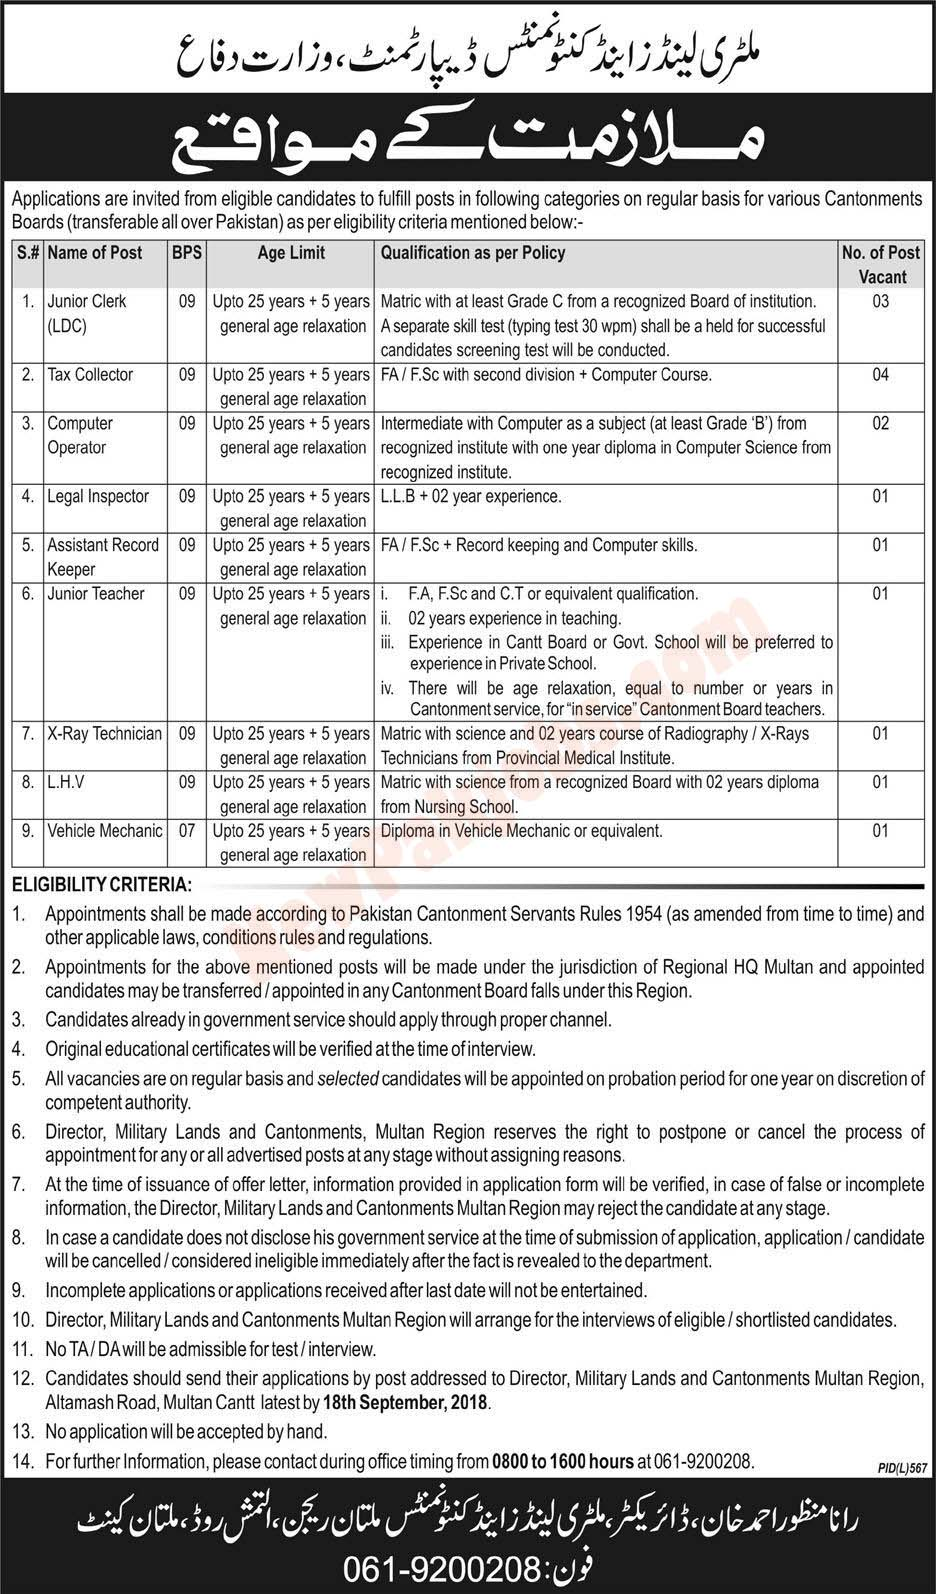 Persons Required in  Military Lands & Cantonments Department District Multan